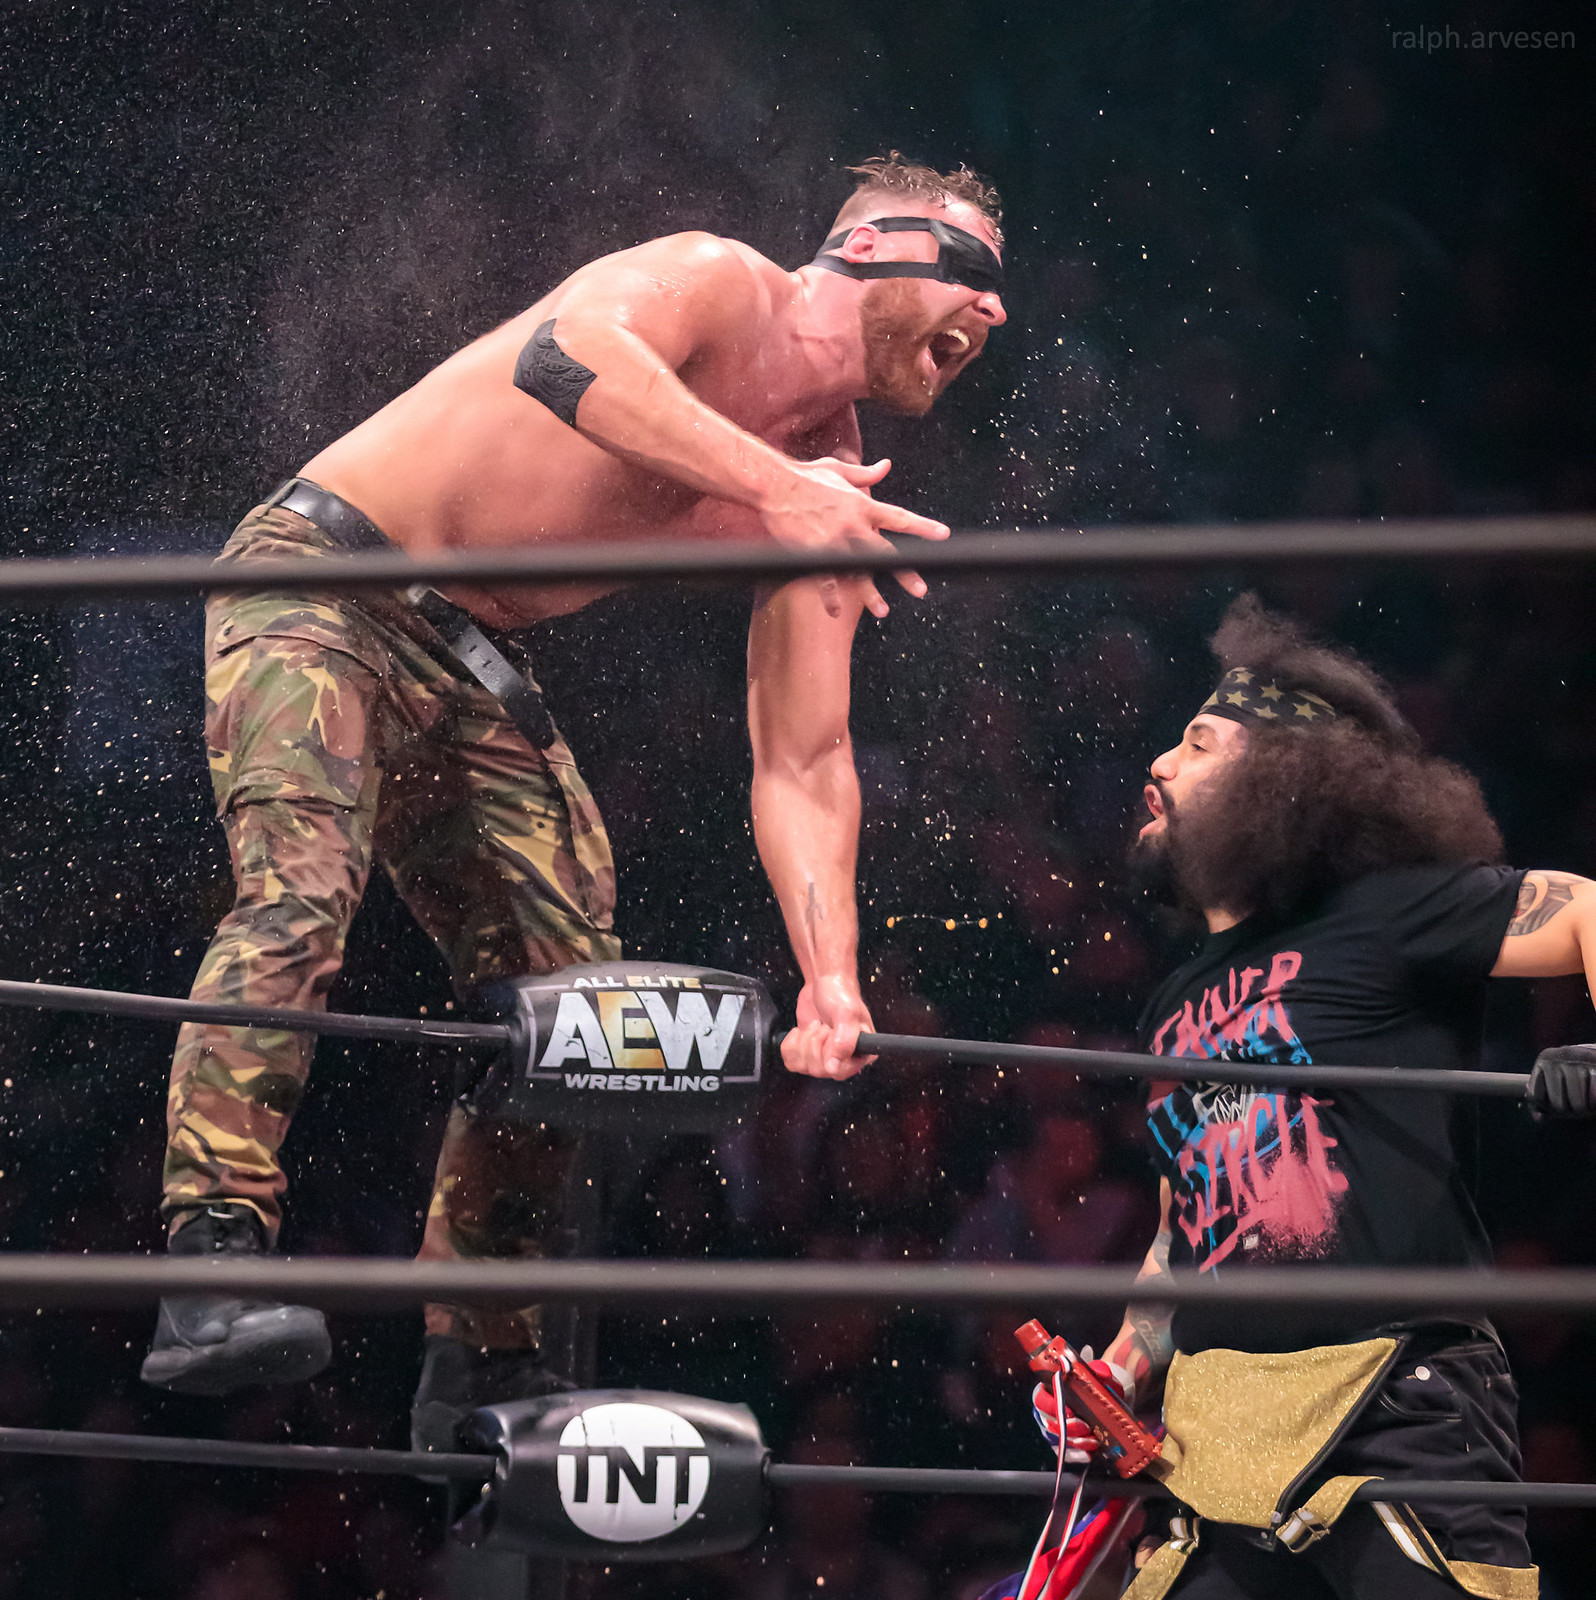 All Elite Wrestling match between Jon Moxley and Santana | Texas Review | Ralph Arvesen